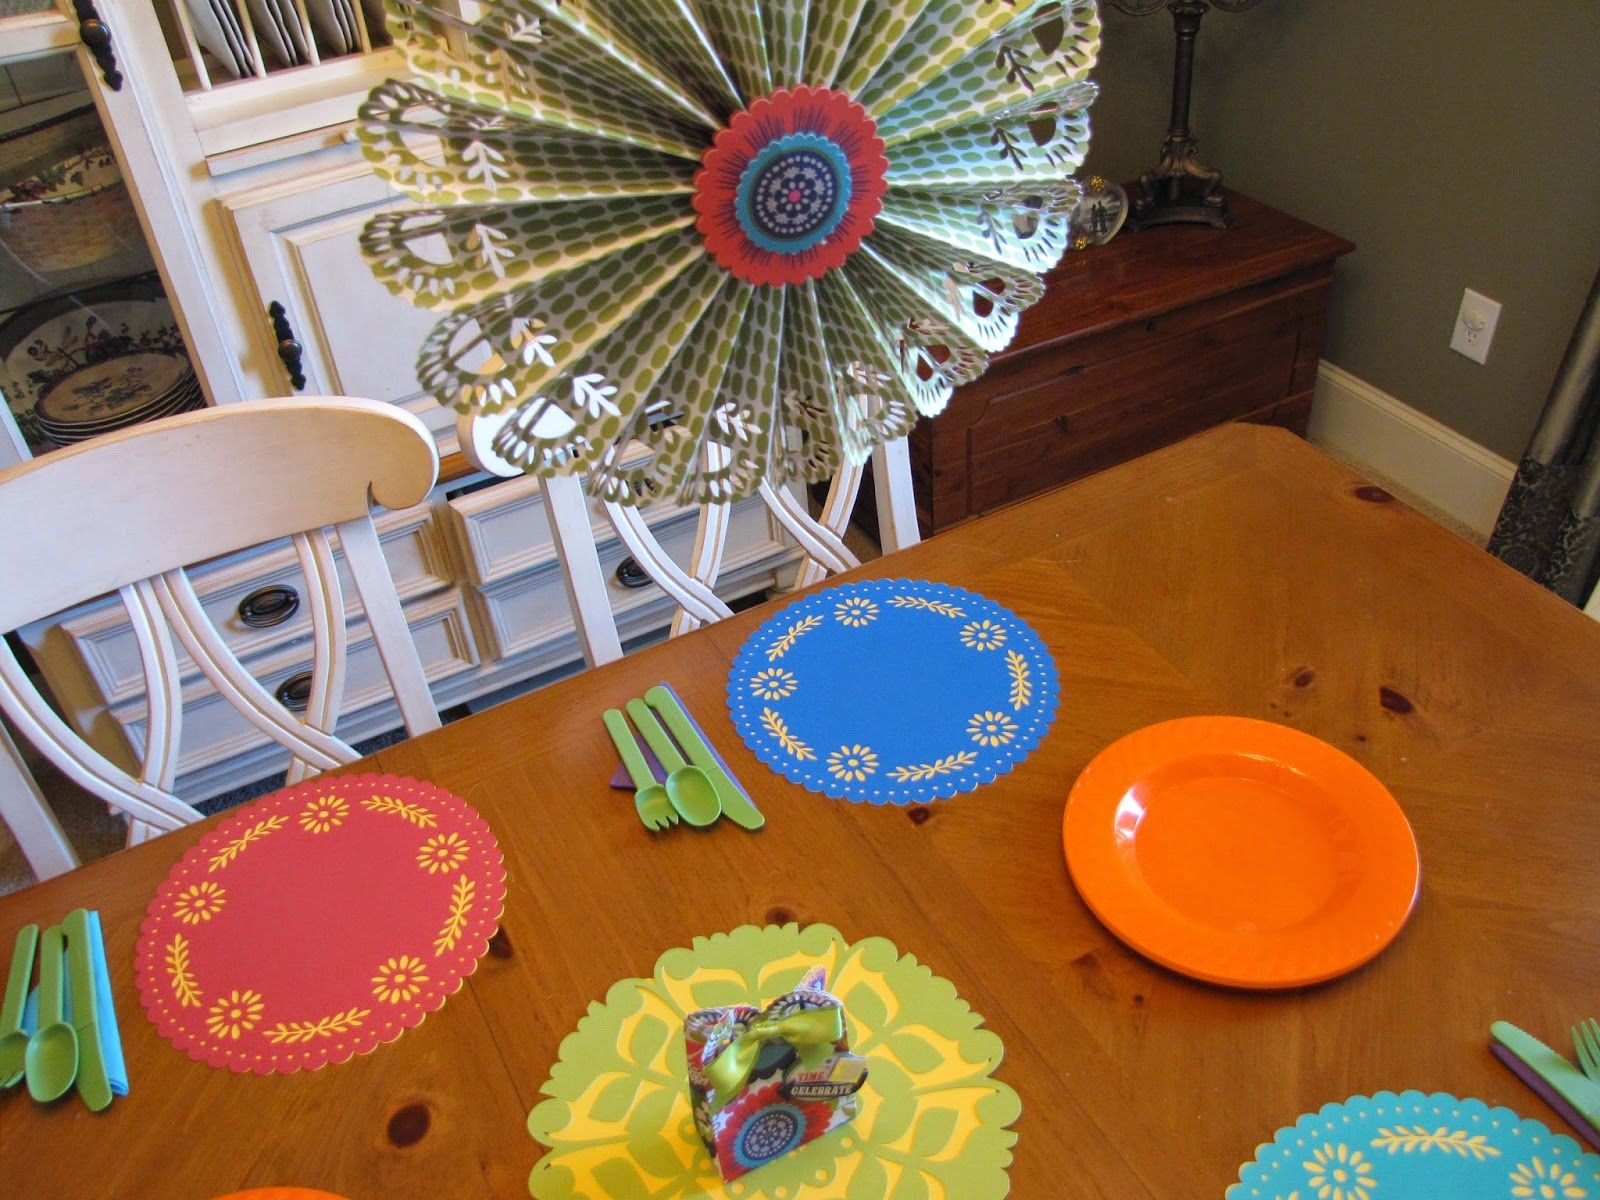 I came, I saw, I created.: DID-I-MENSION II ~ Circleville National Scrapbooking Day II - Cinco De Mayo party decor #CirclevilleNSD